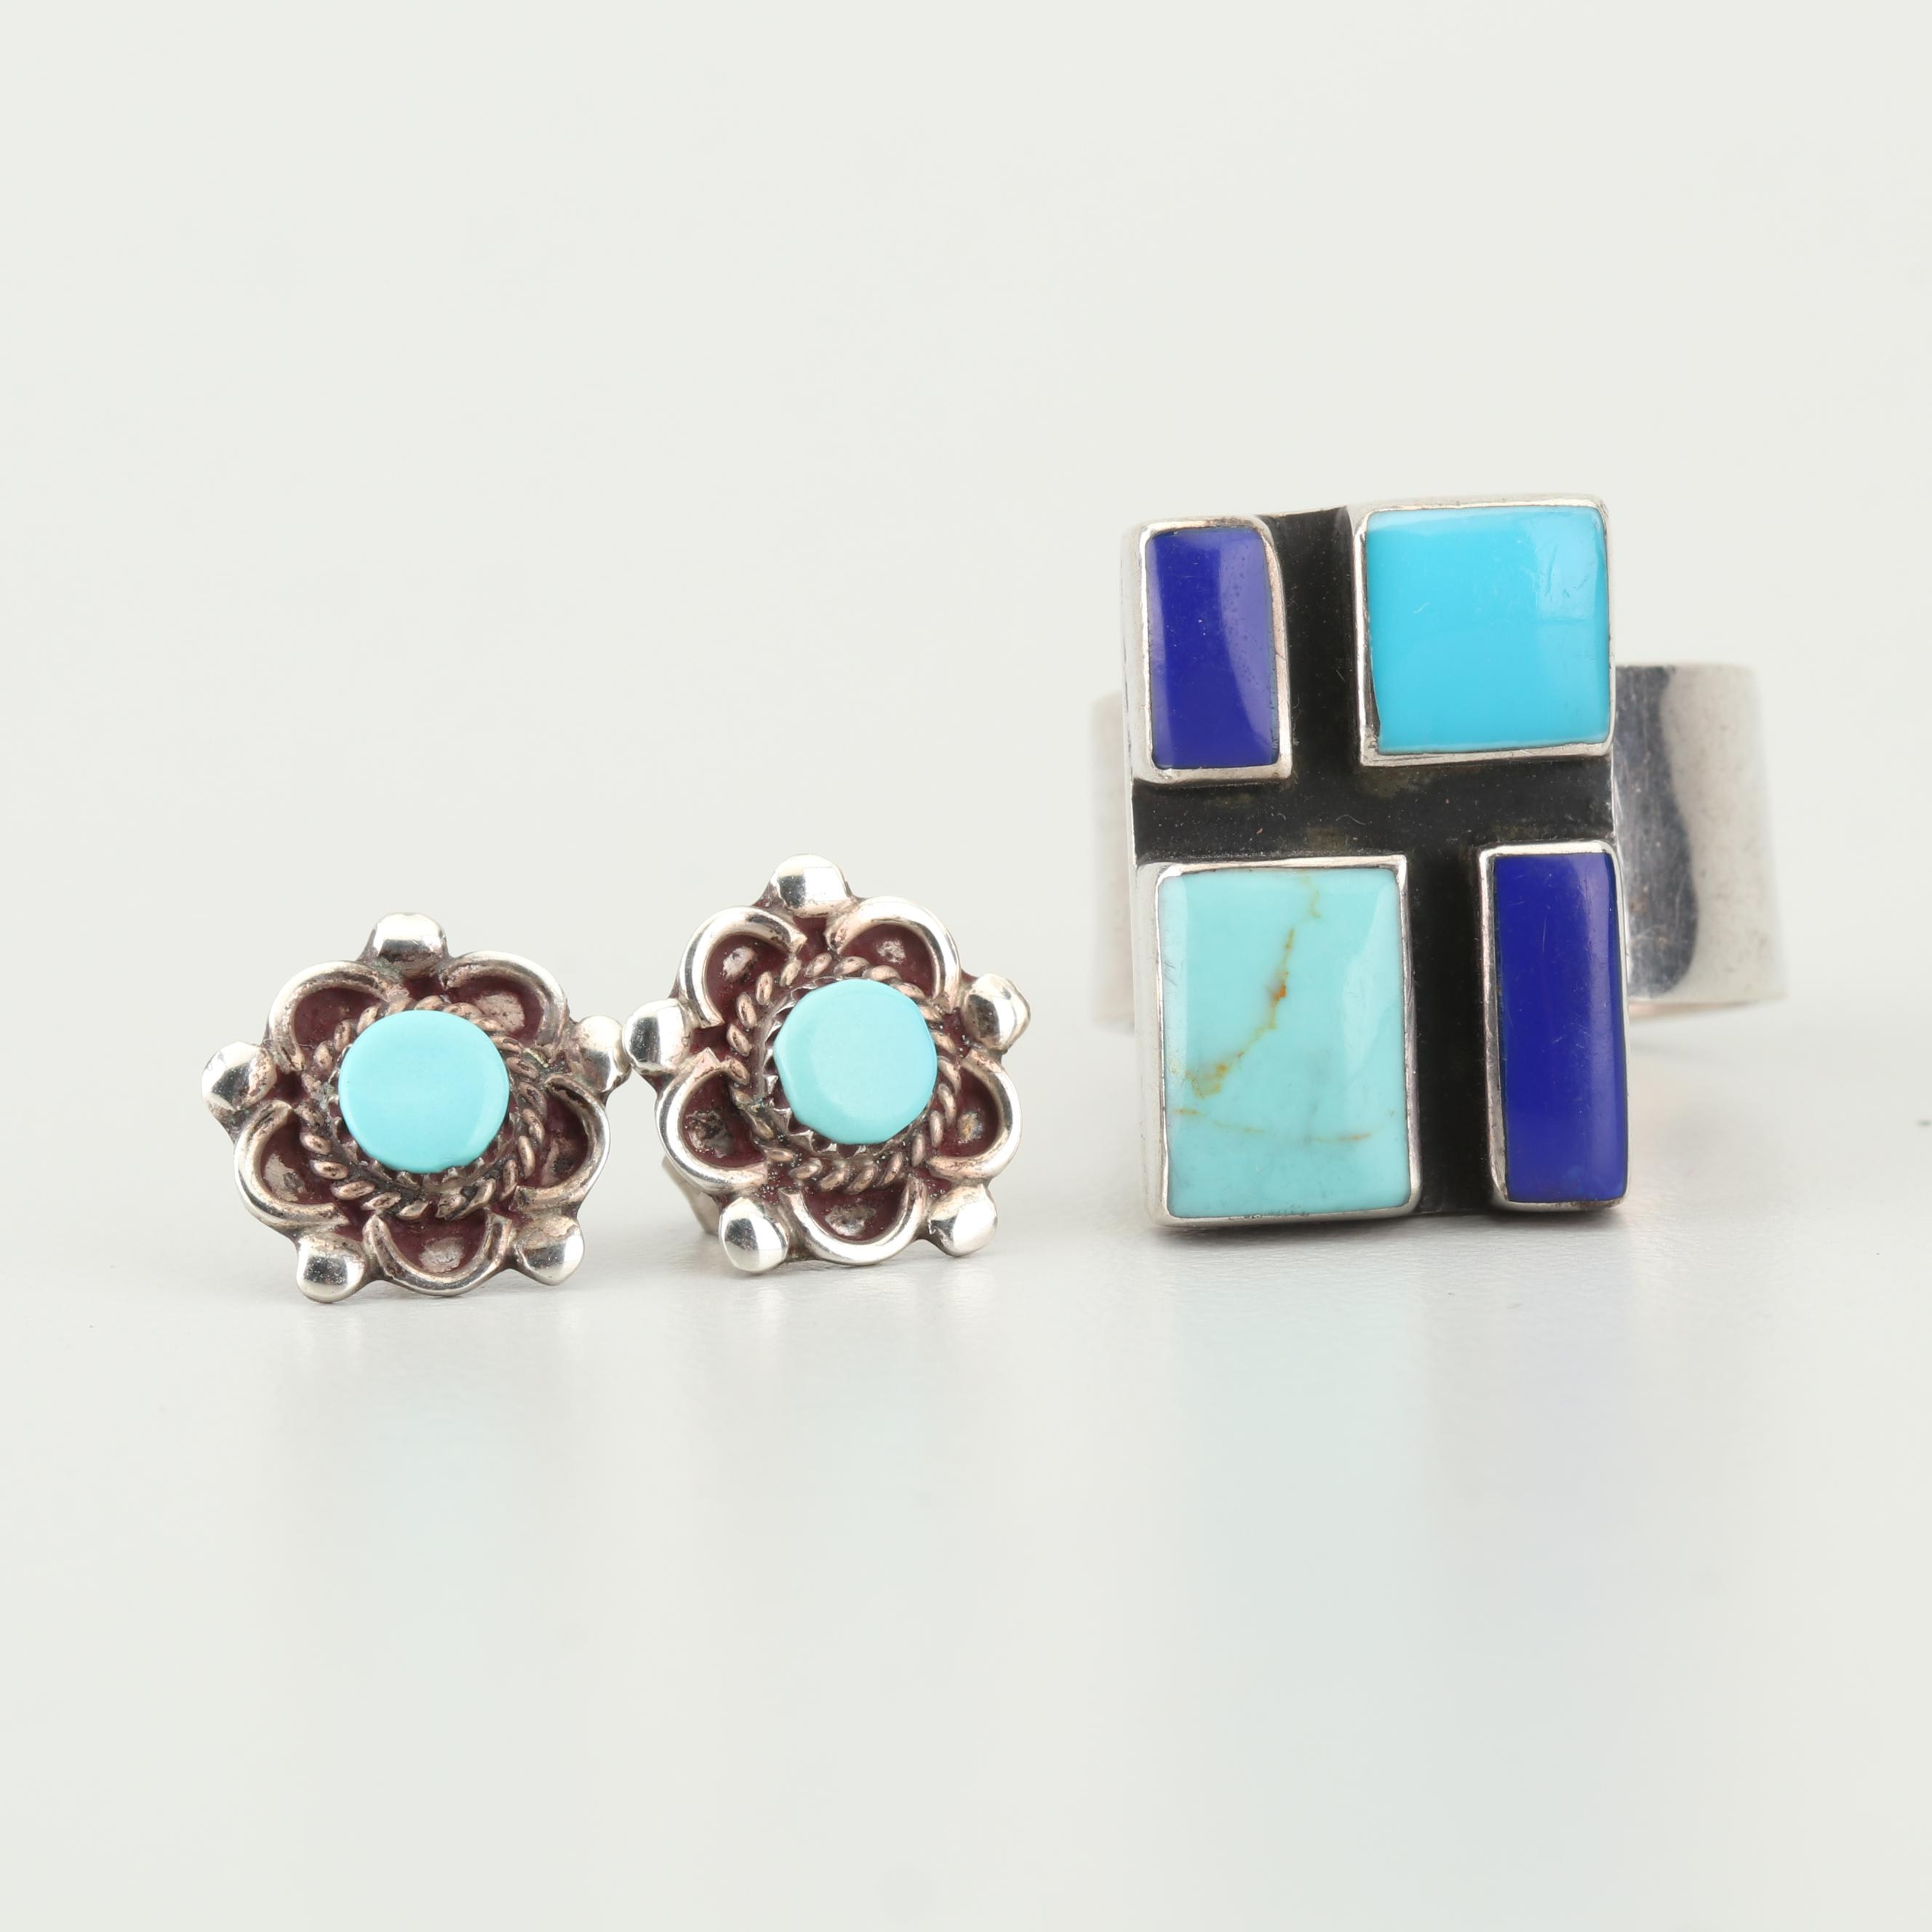 Sterling Silver Turquoise and Lapis Lazuli Ring and Sterling Turquoise Earrings